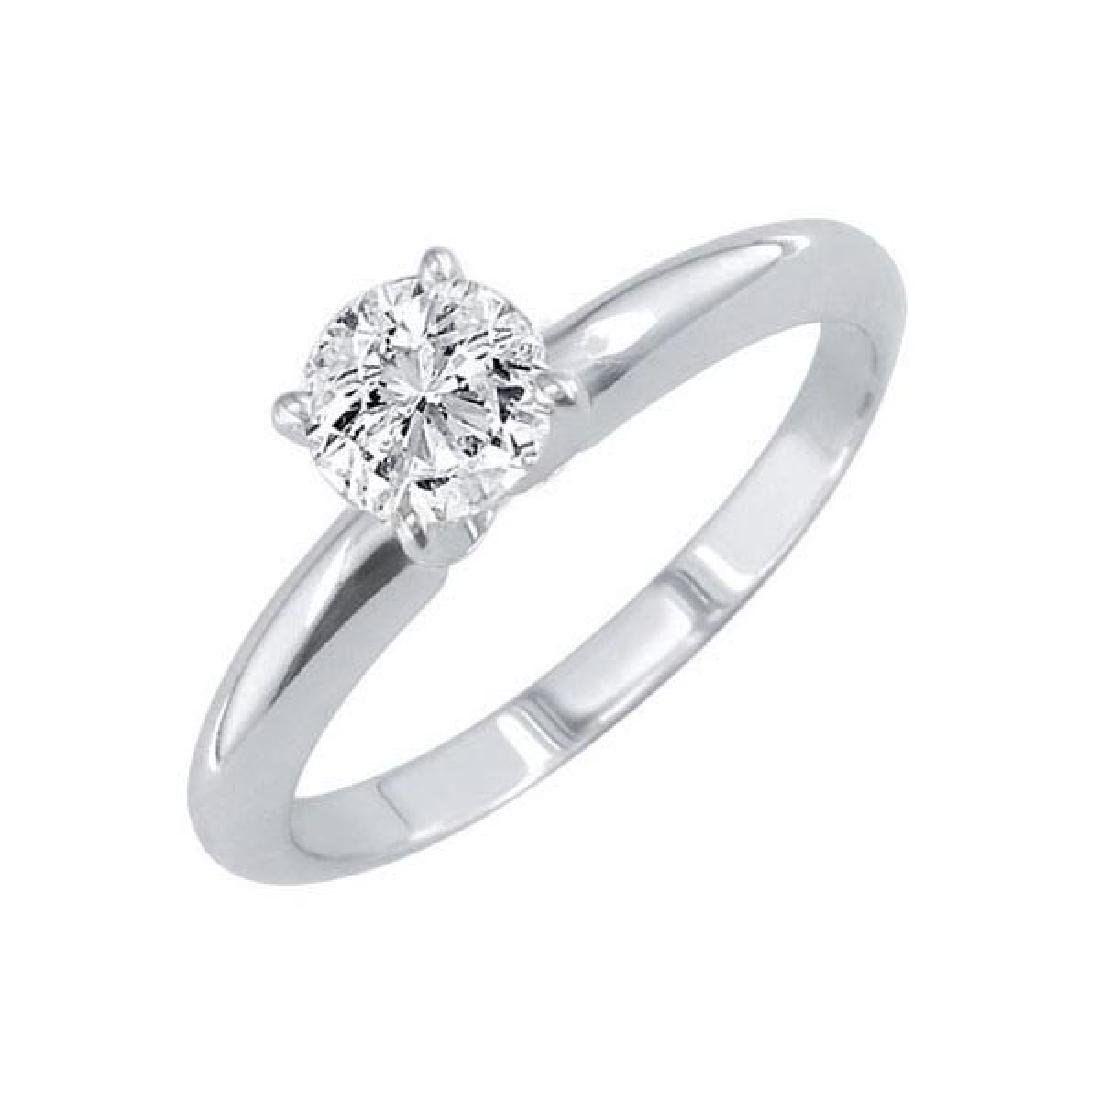 Certified 1.07 CTW Round Diamond Solitaire 14k Ring H/S